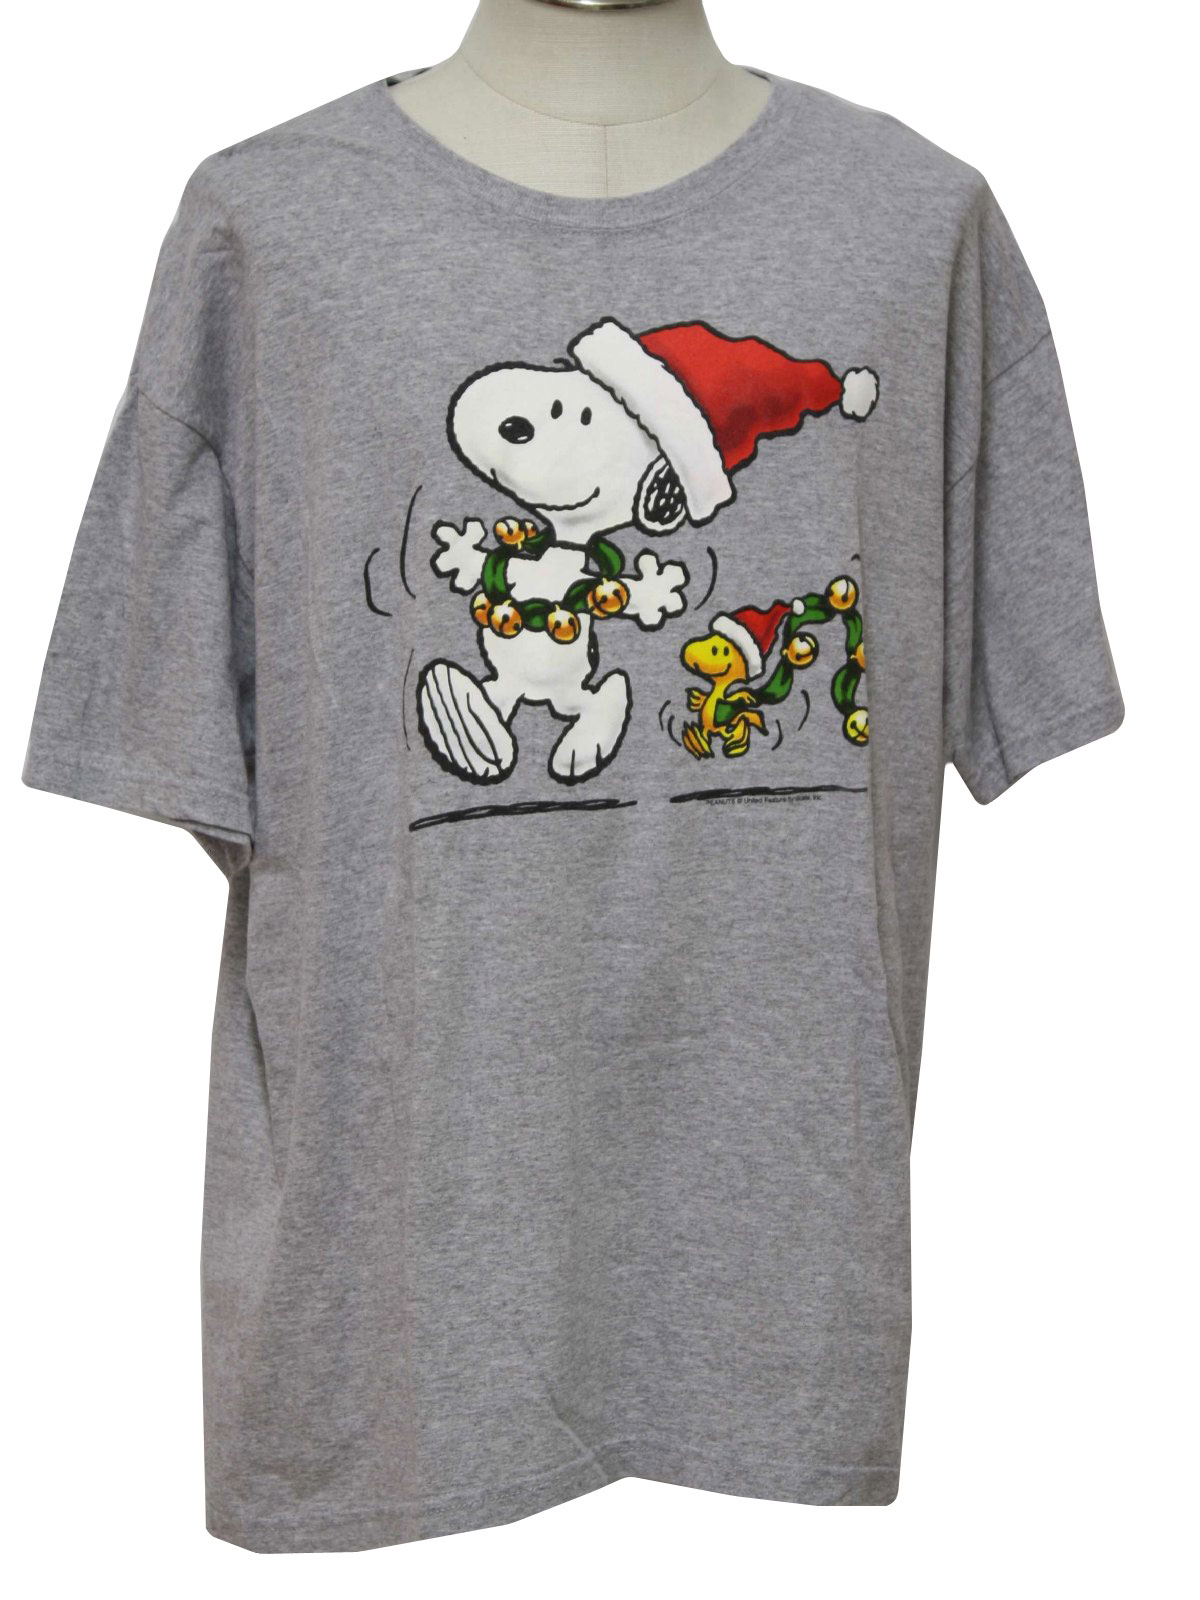 ugly christmas t shirt to wear under your ugly christmas sweater peanuts by gildan unisex heather gray cotton jersey with white black red green - Snoopy Christmas Shirt